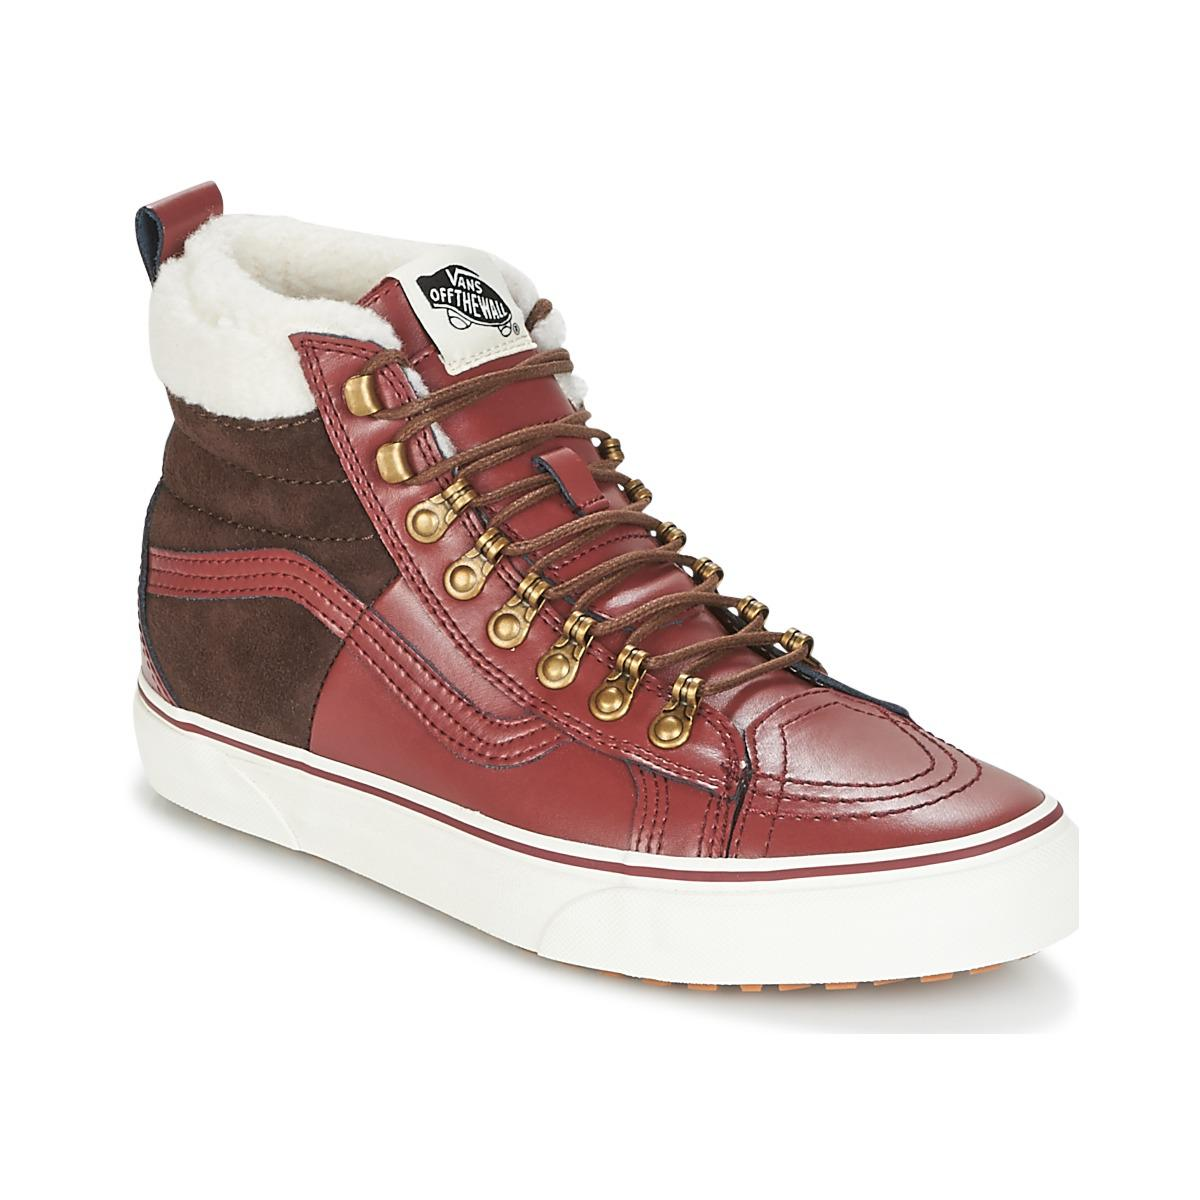 74129598e98 Vans Sk8-hi 46 Mte Dx Shoes (high-top Trainers) in Red - Save 8% - Lyst